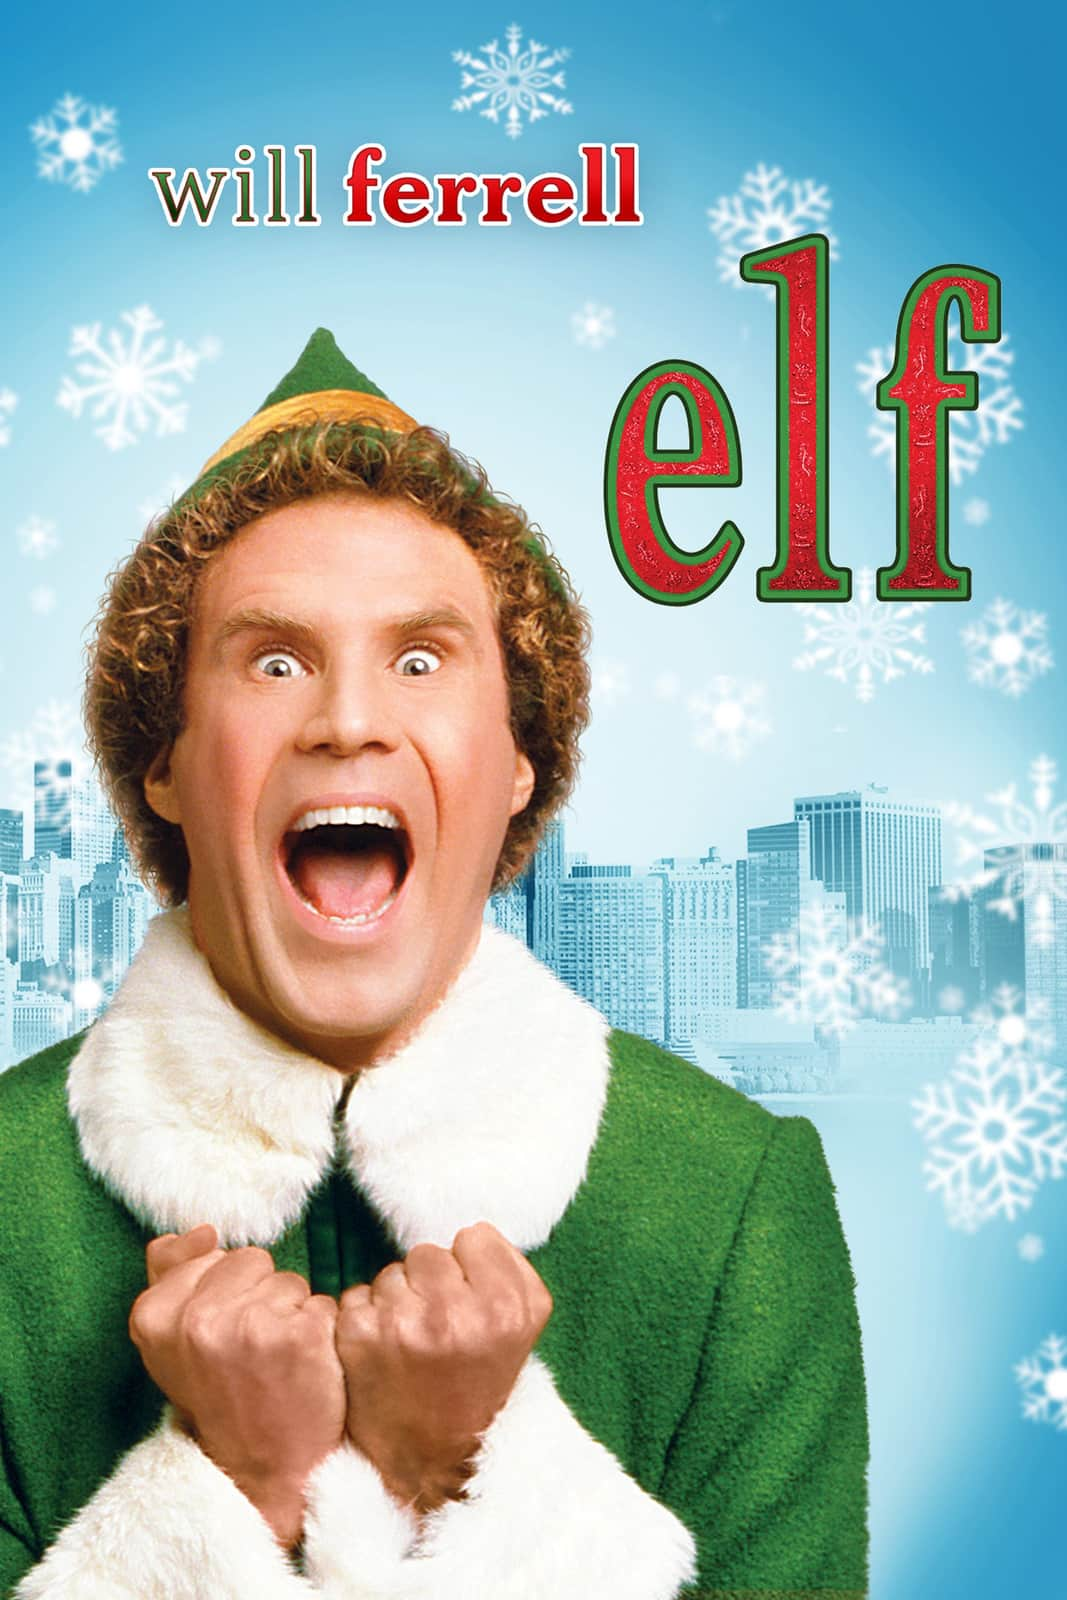 Elf Movie (Digital Version HD) at Amazon Prime Video - $6.99 to own